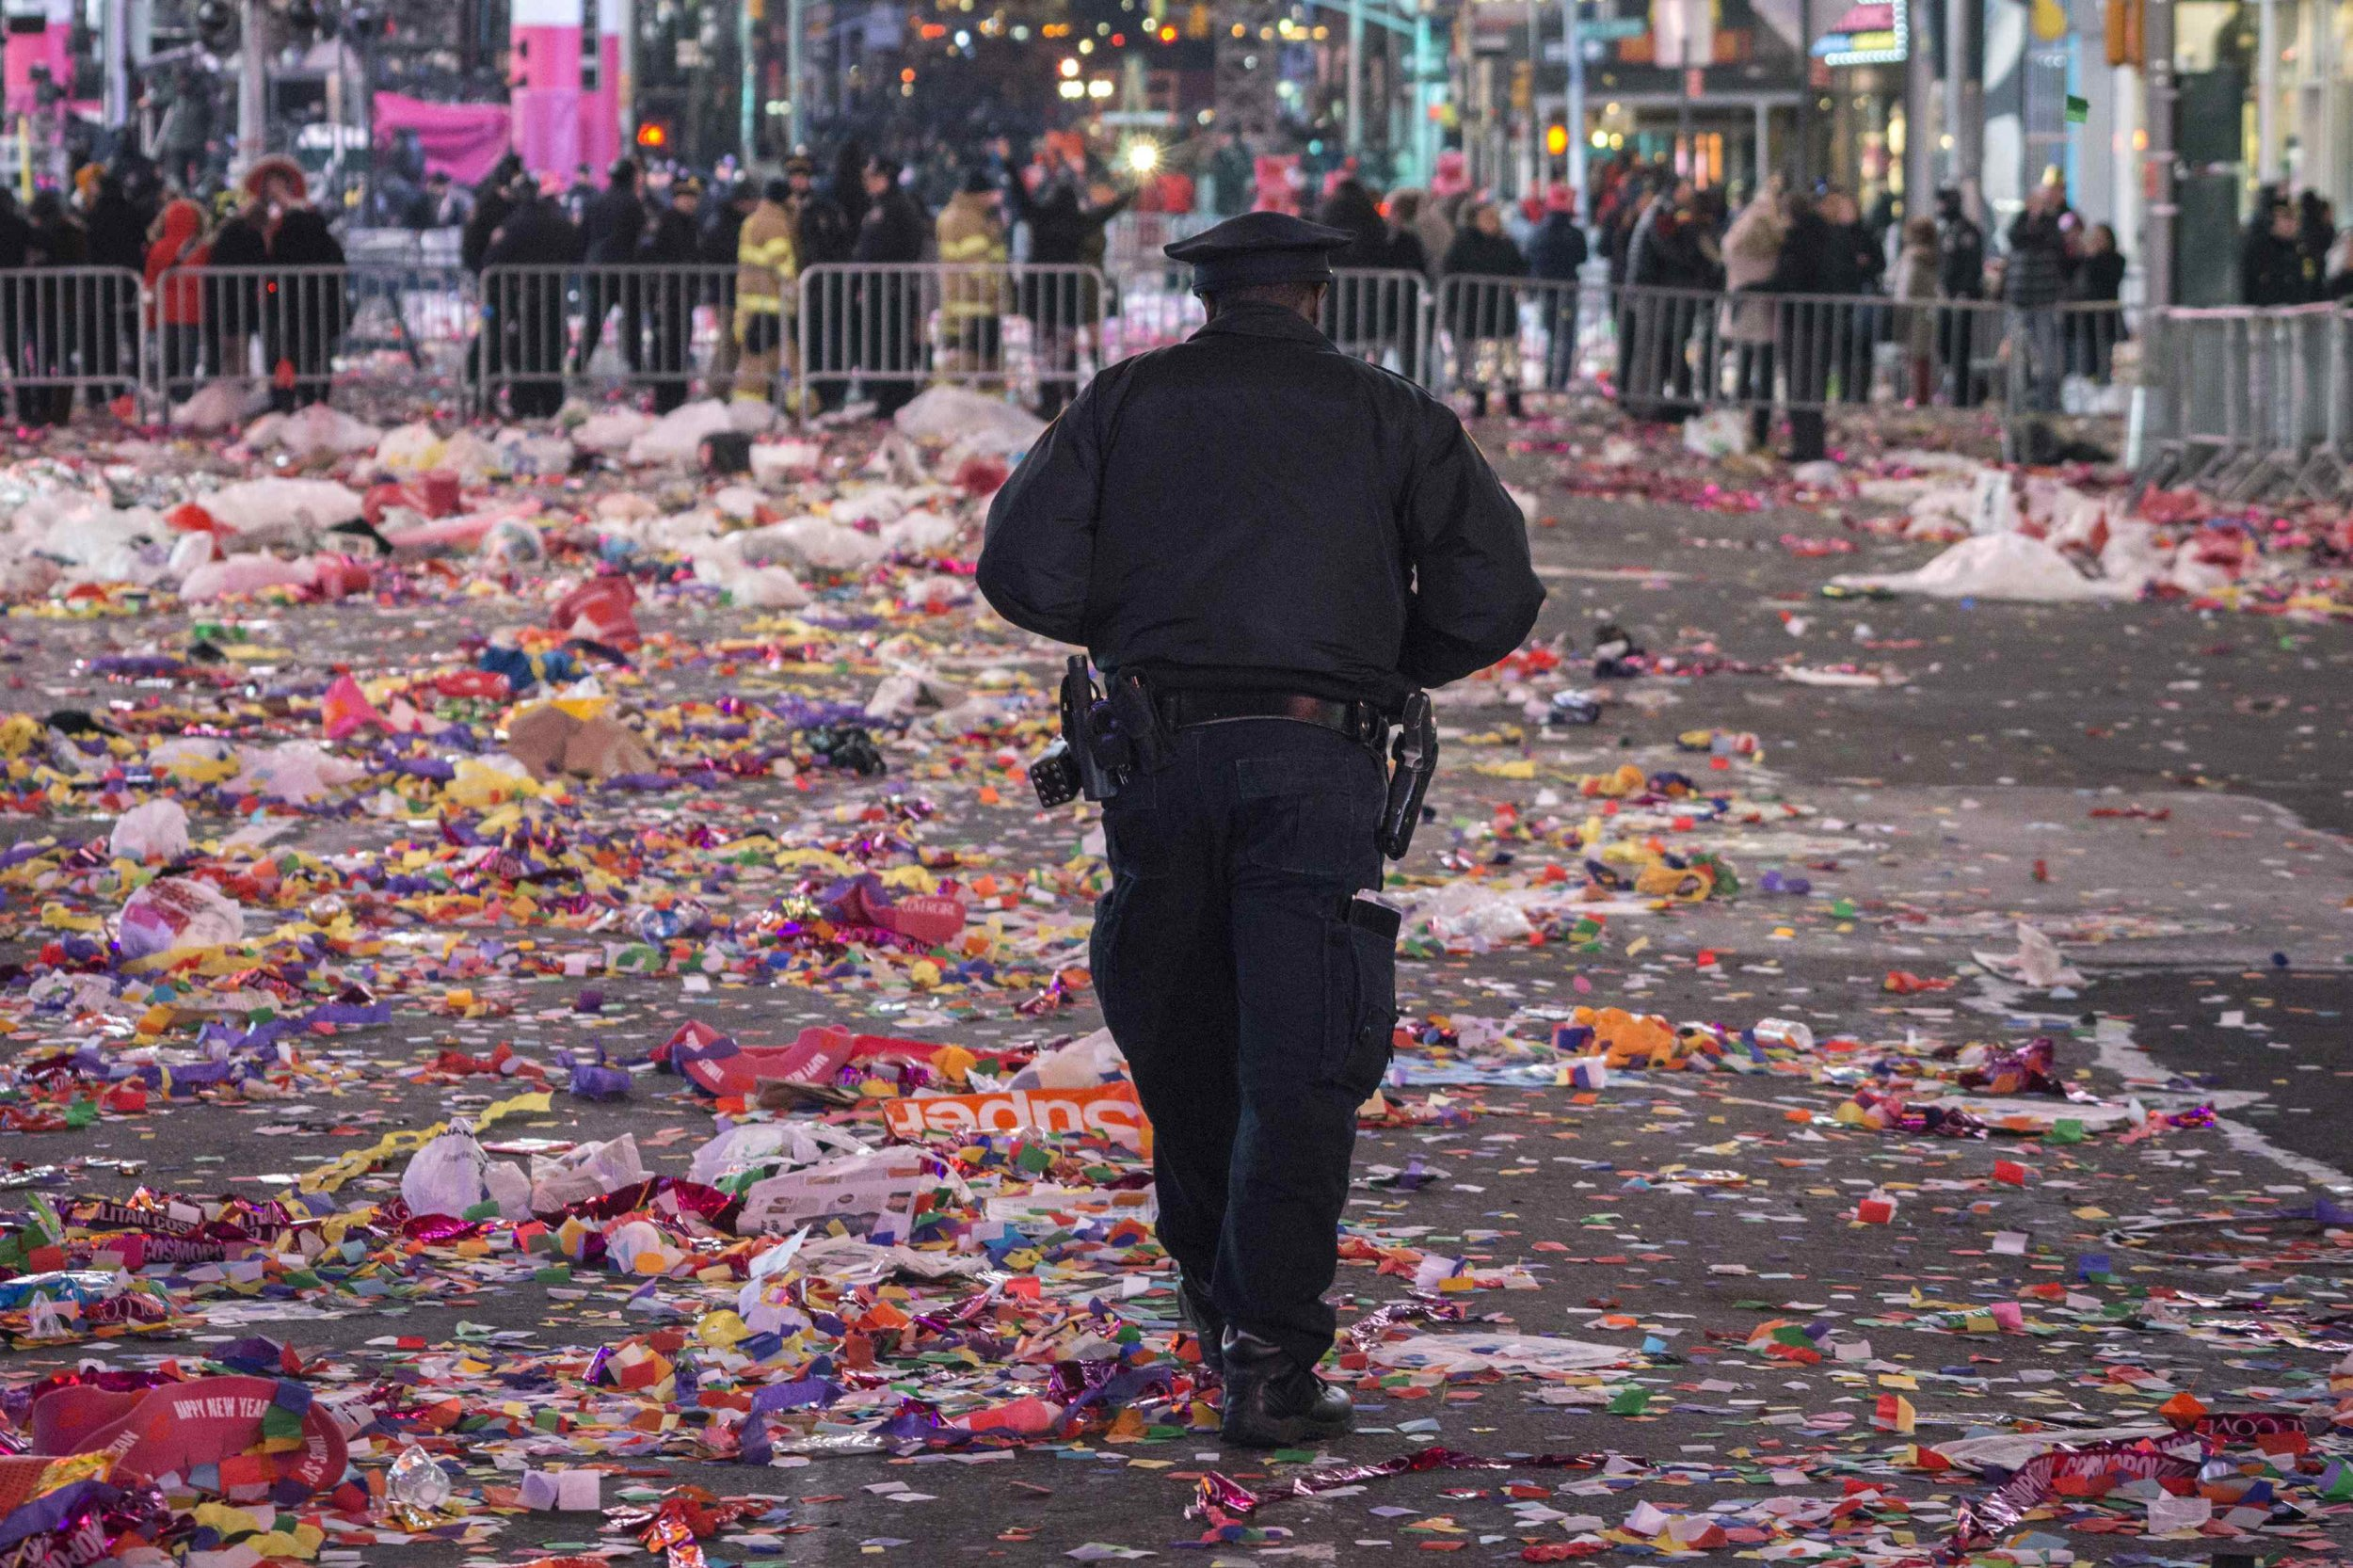 A cop walking through trashed Times Square on New Years, newsweek.com